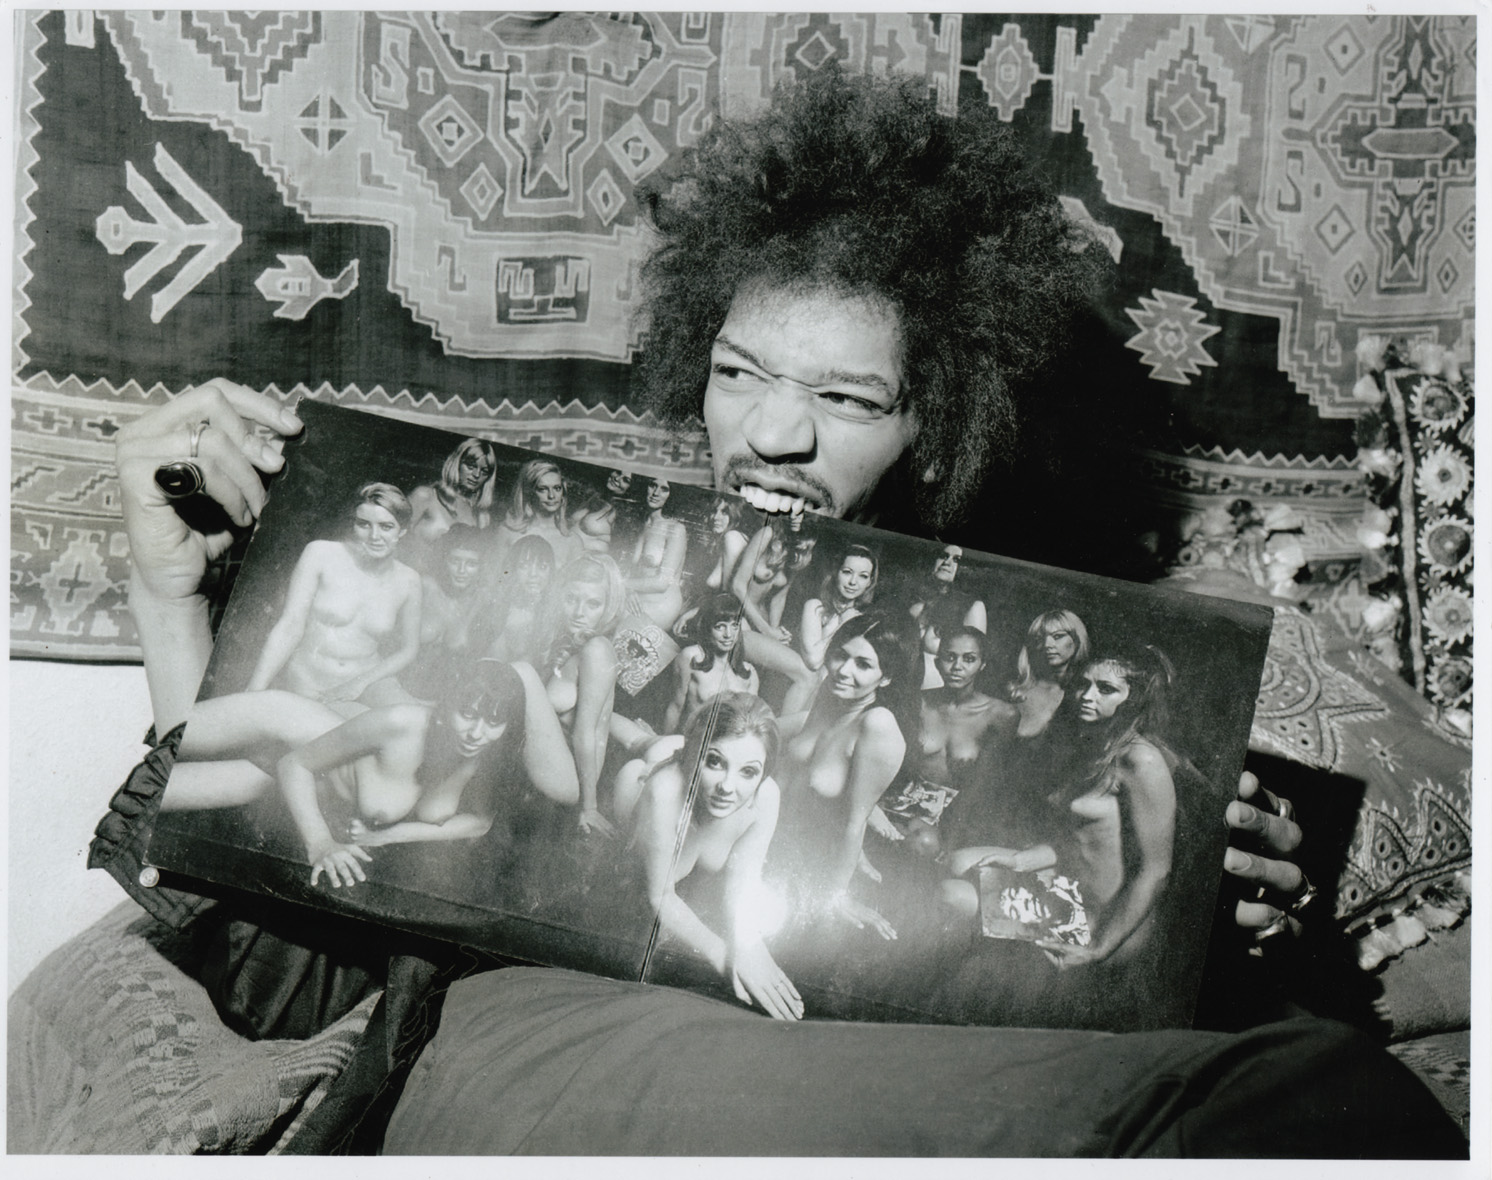 Jimi hendrix s record collection for Original photography for sale